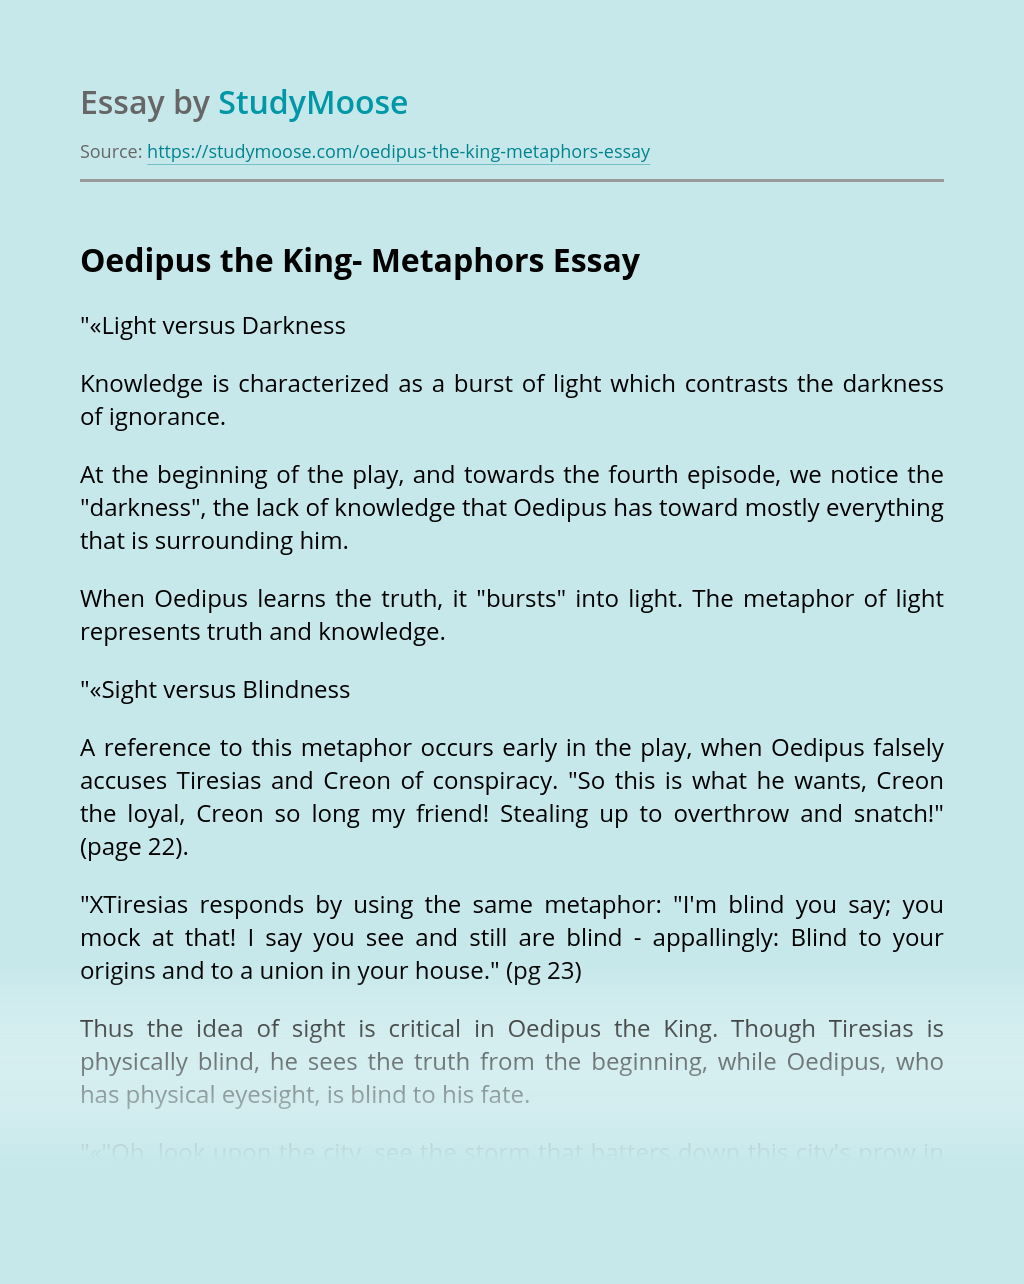 Oedipus the King- Metaphors